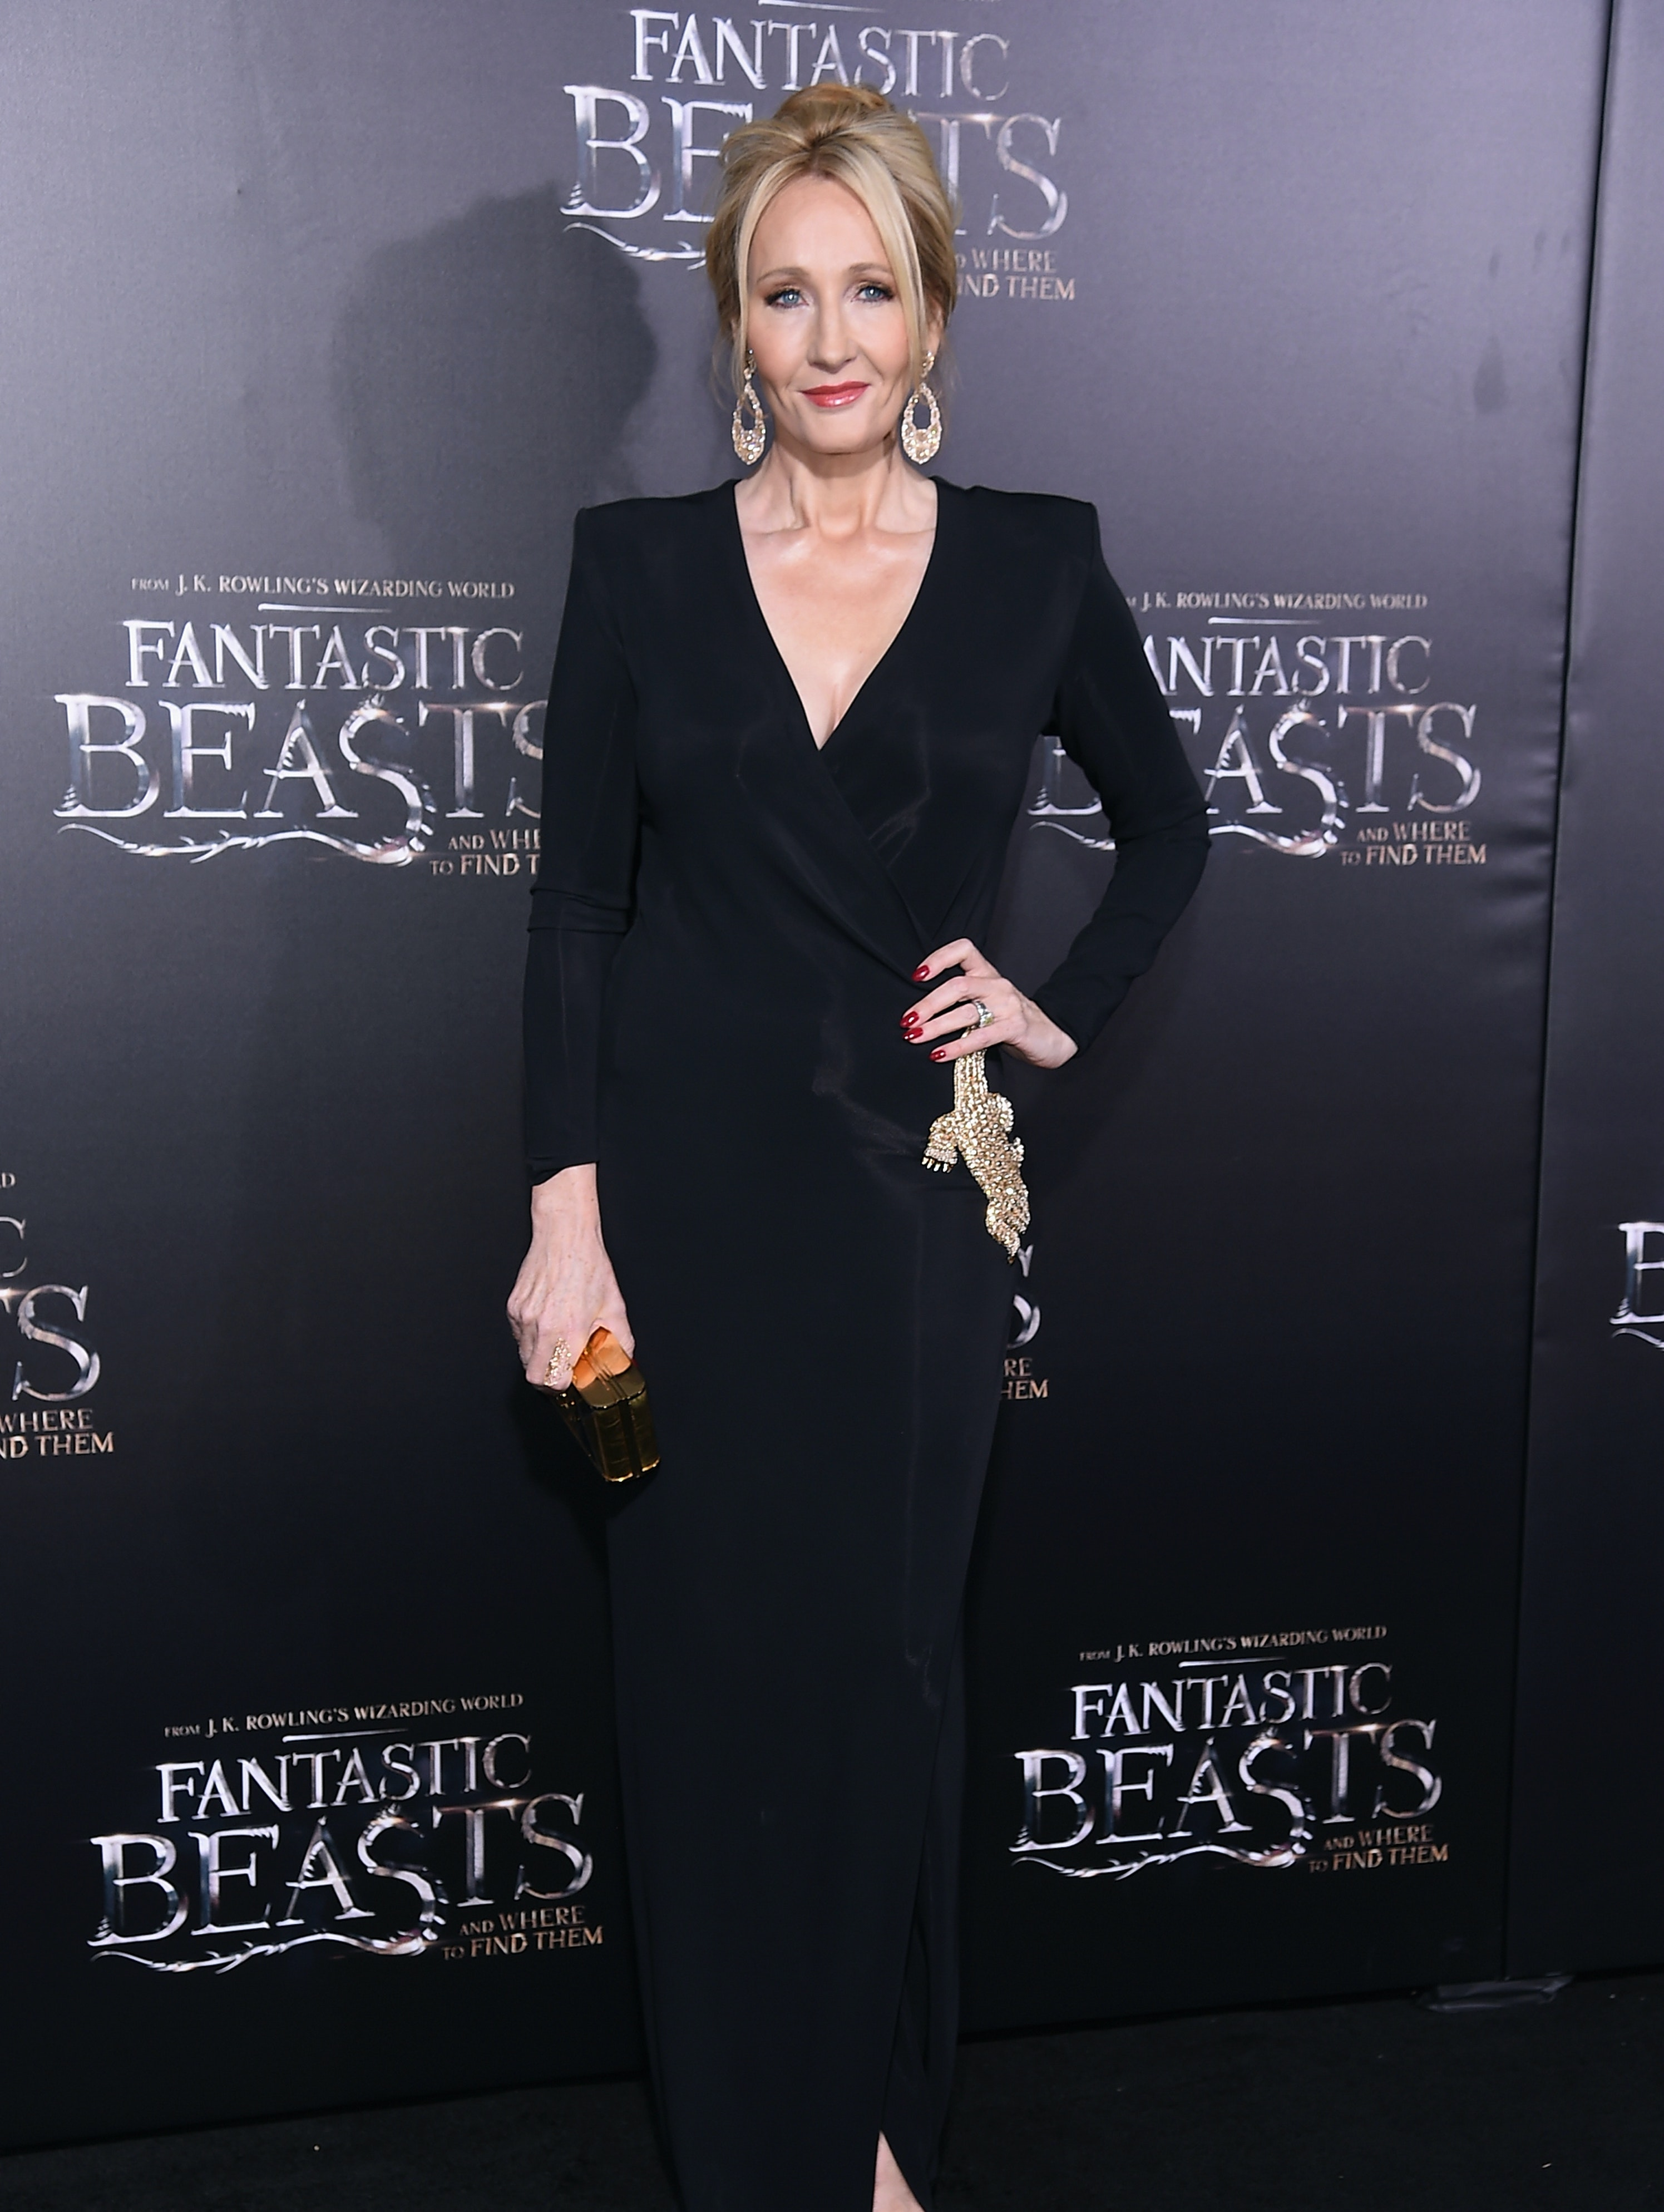 NEW YORK, NY - NOVEMBER 10:  J. K. Rowling attends the 'Fantastic Beasts And Where To Find Them' World Premiere at Alice Tully Hall, Lincoln Center on November 10, 2016 in New York City.  (Photo by Michael Loccisano/Getty Images)